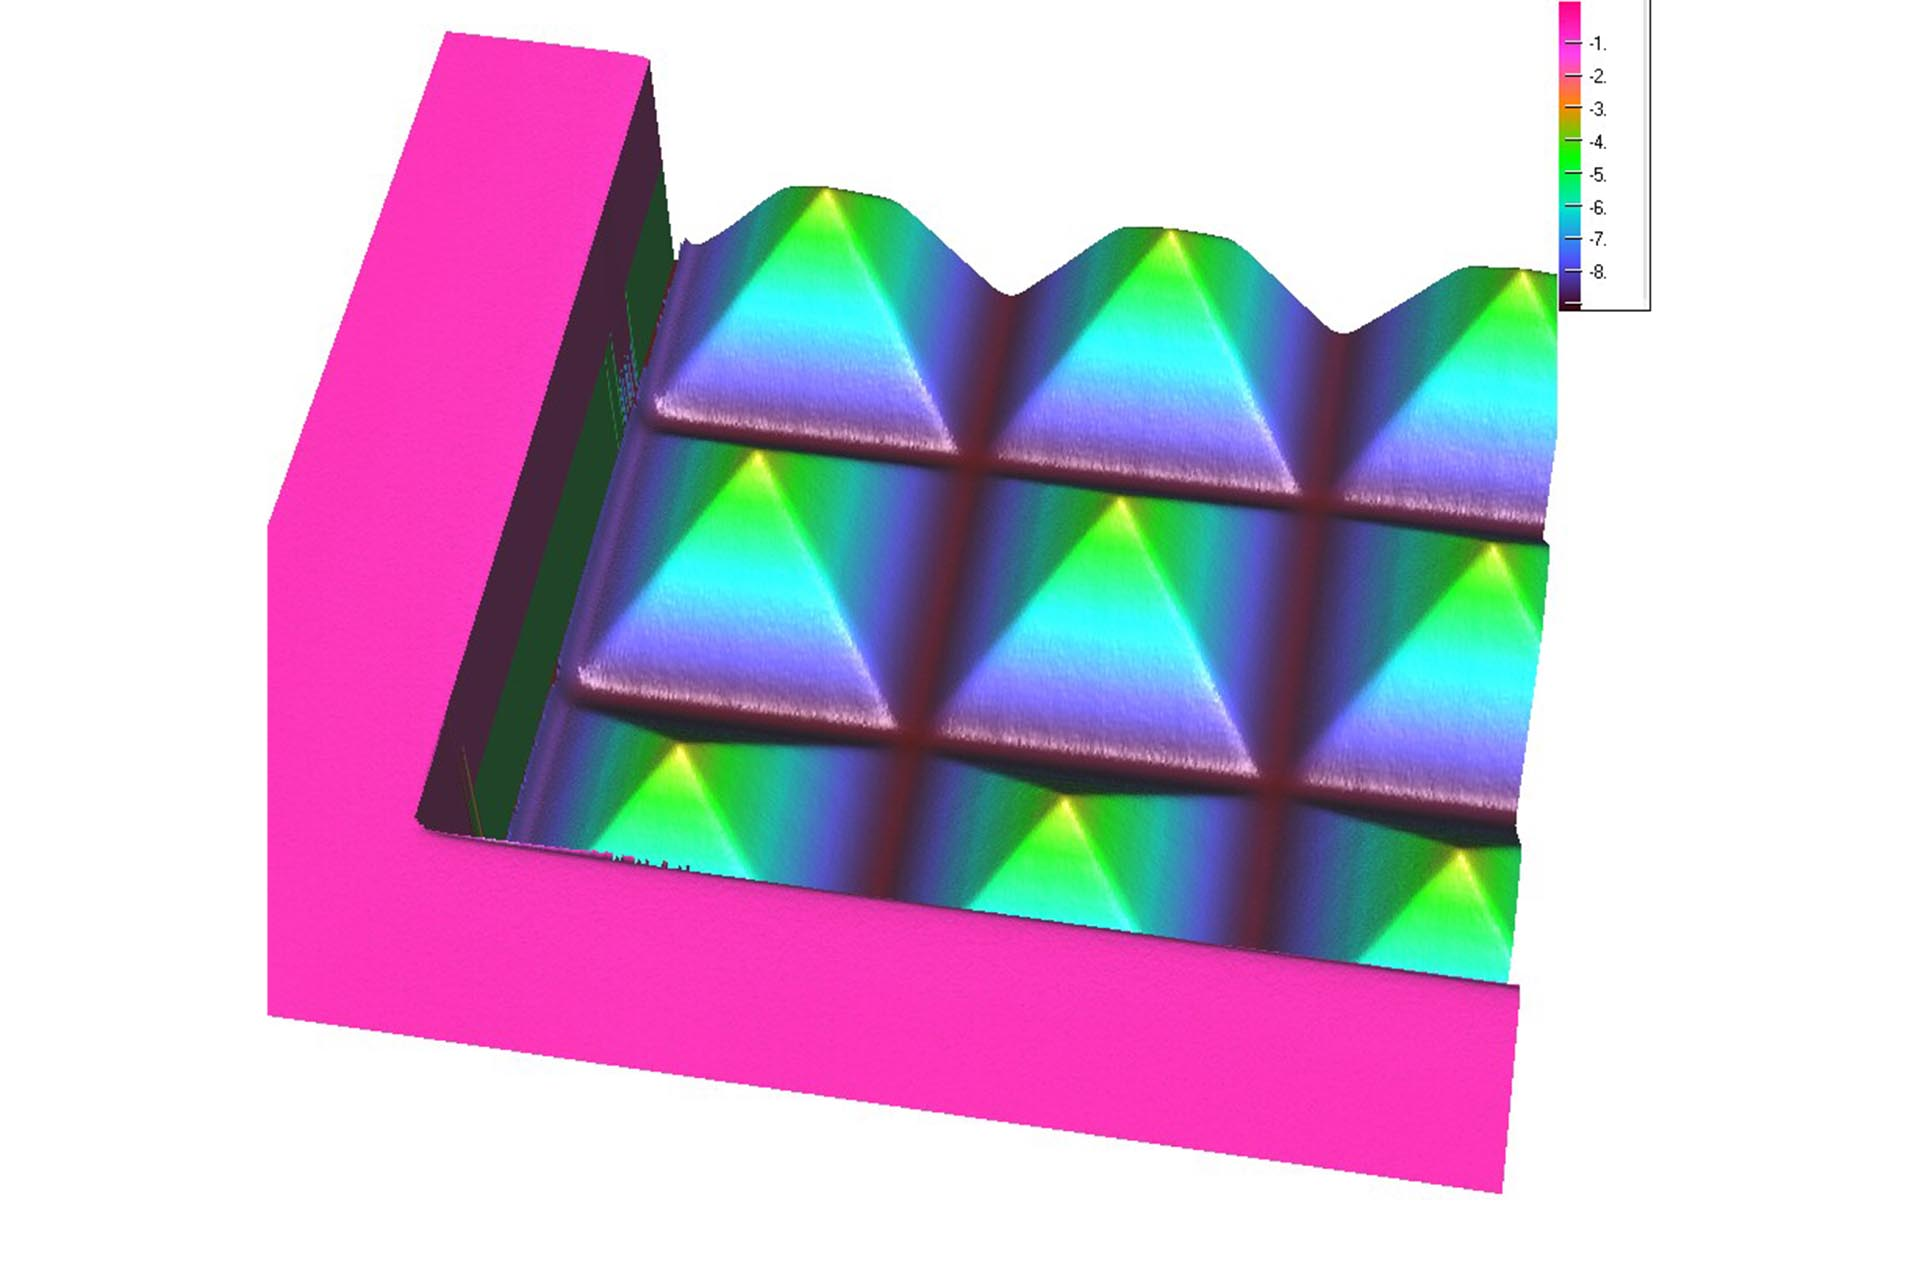 Confocal microscope image of a pyramid (pitch 47 µm, height 5.8 µm)